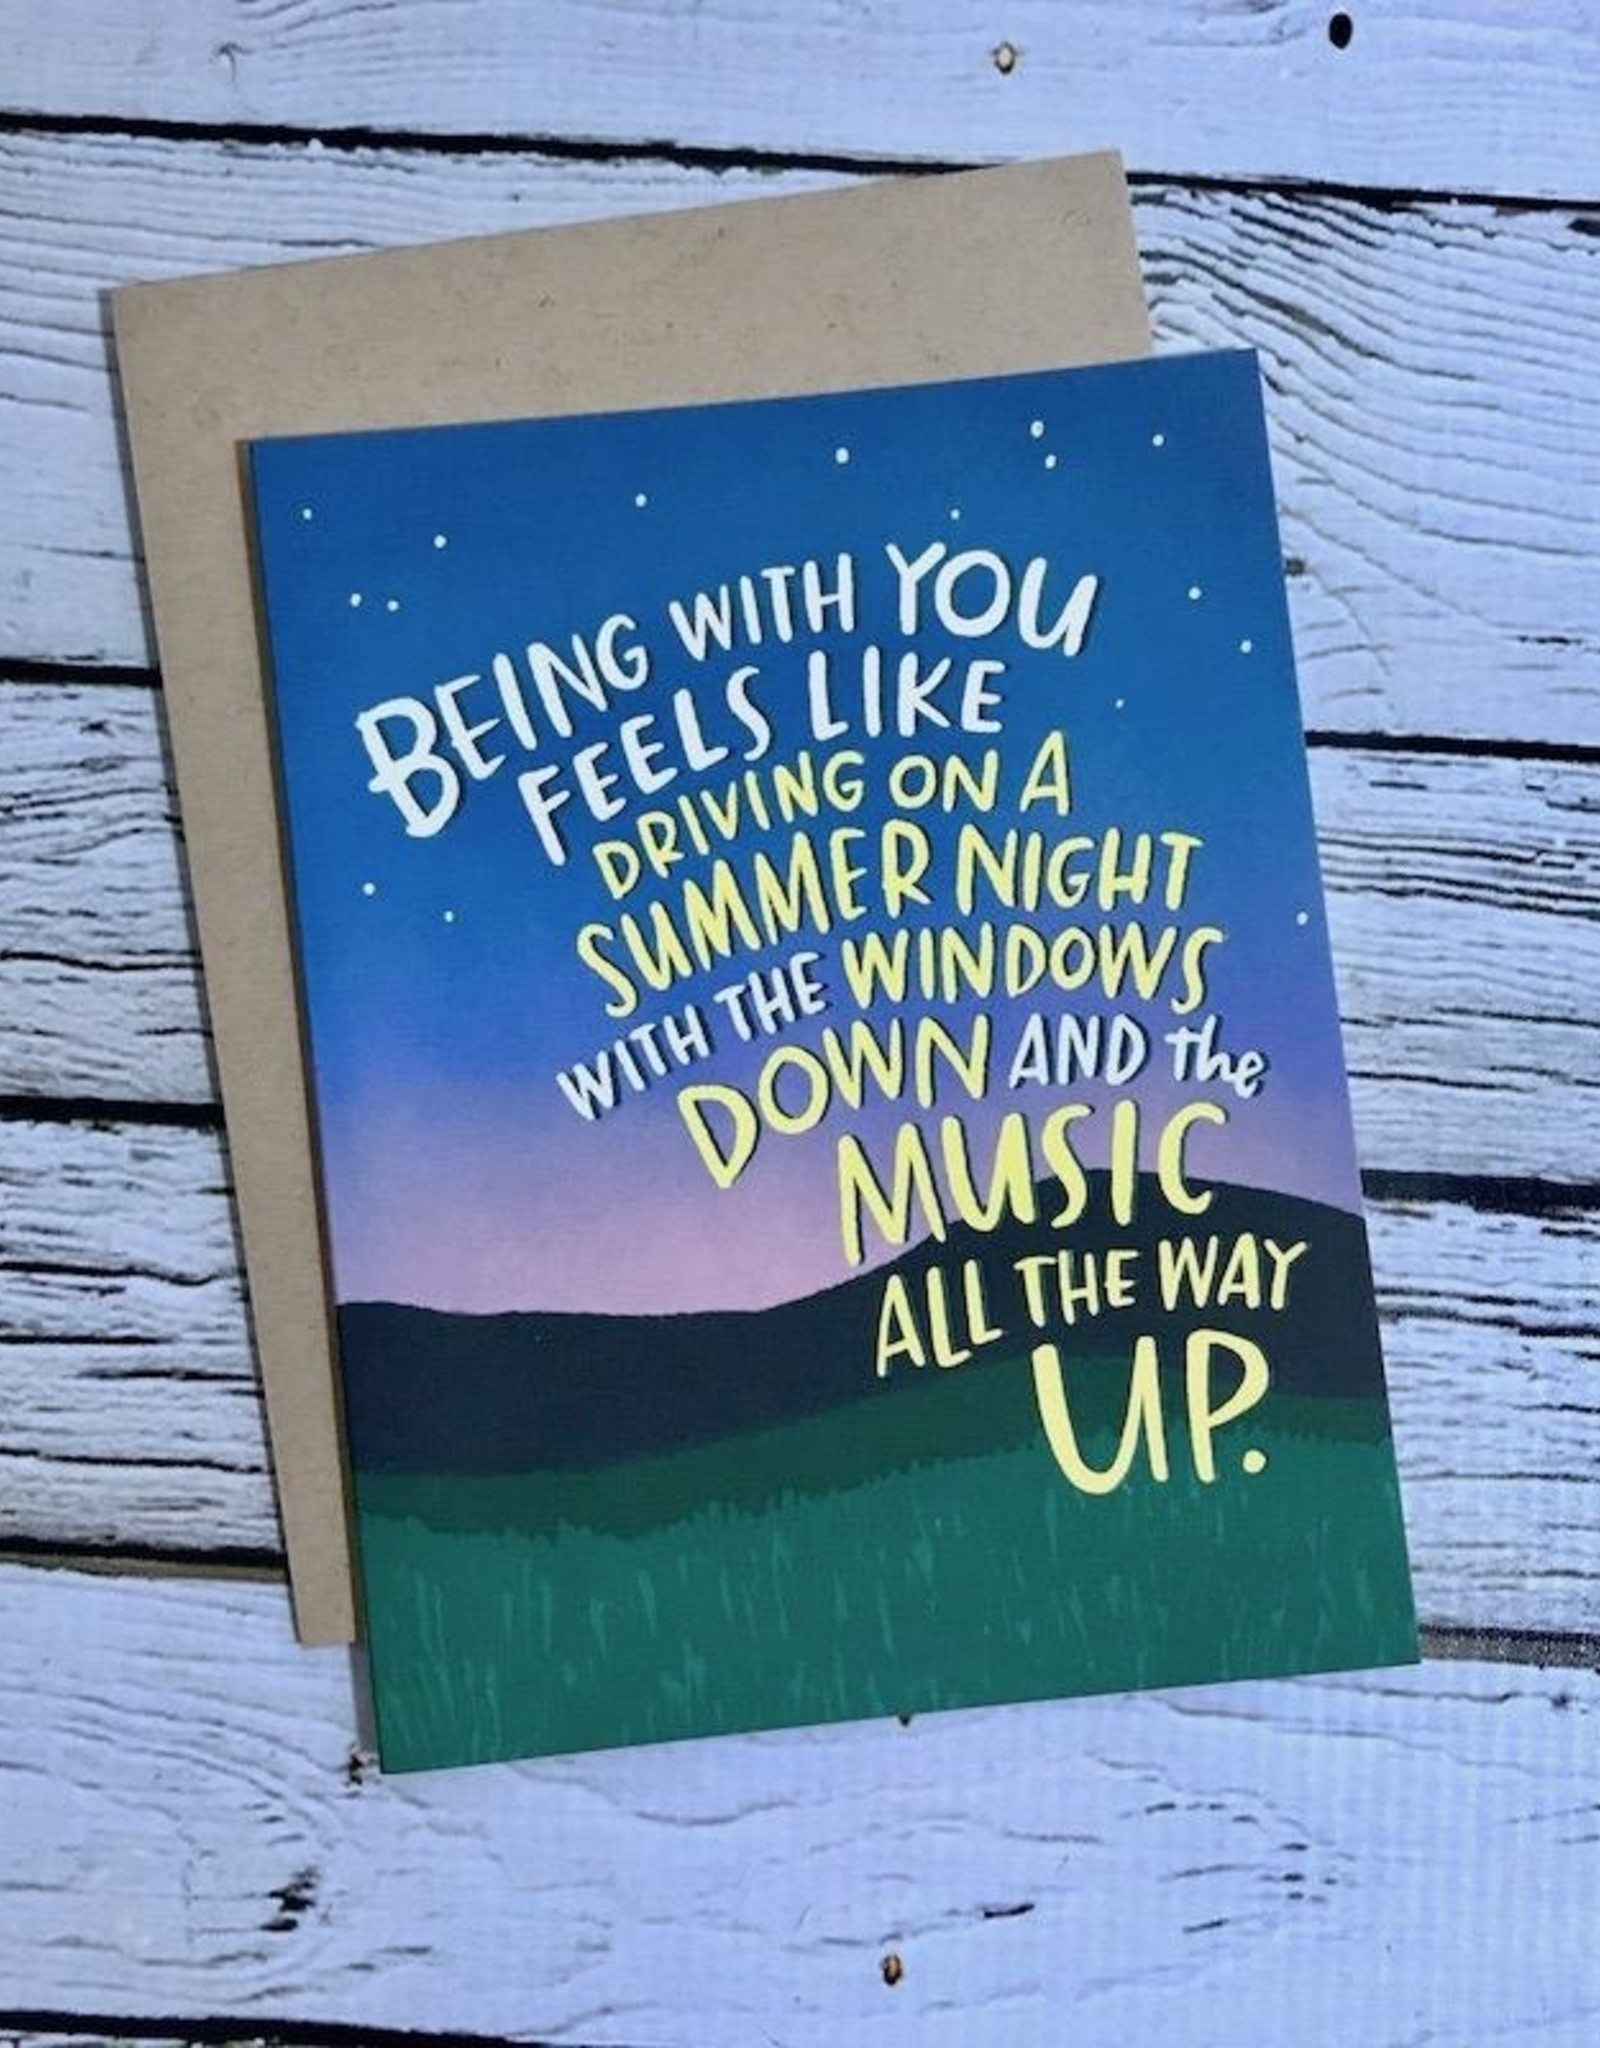 emily mcdowell Summer Night Card